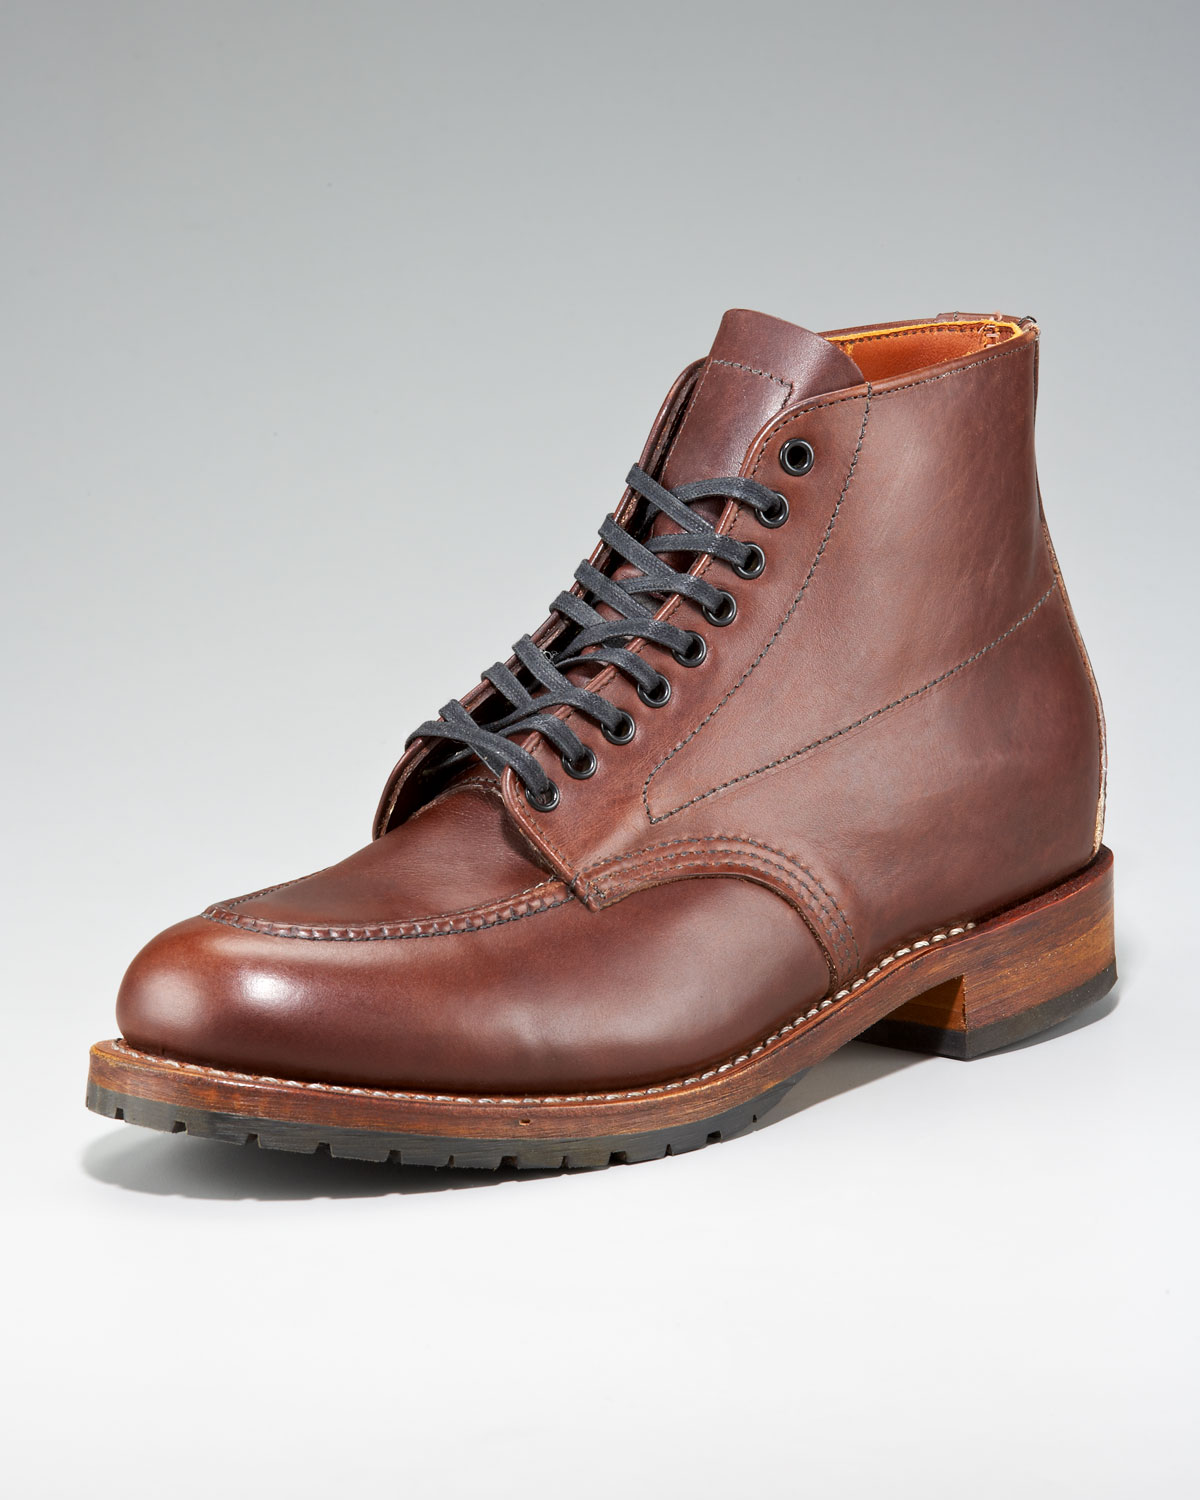 Red Wing Work Boots For Sale c9hKQ1hE